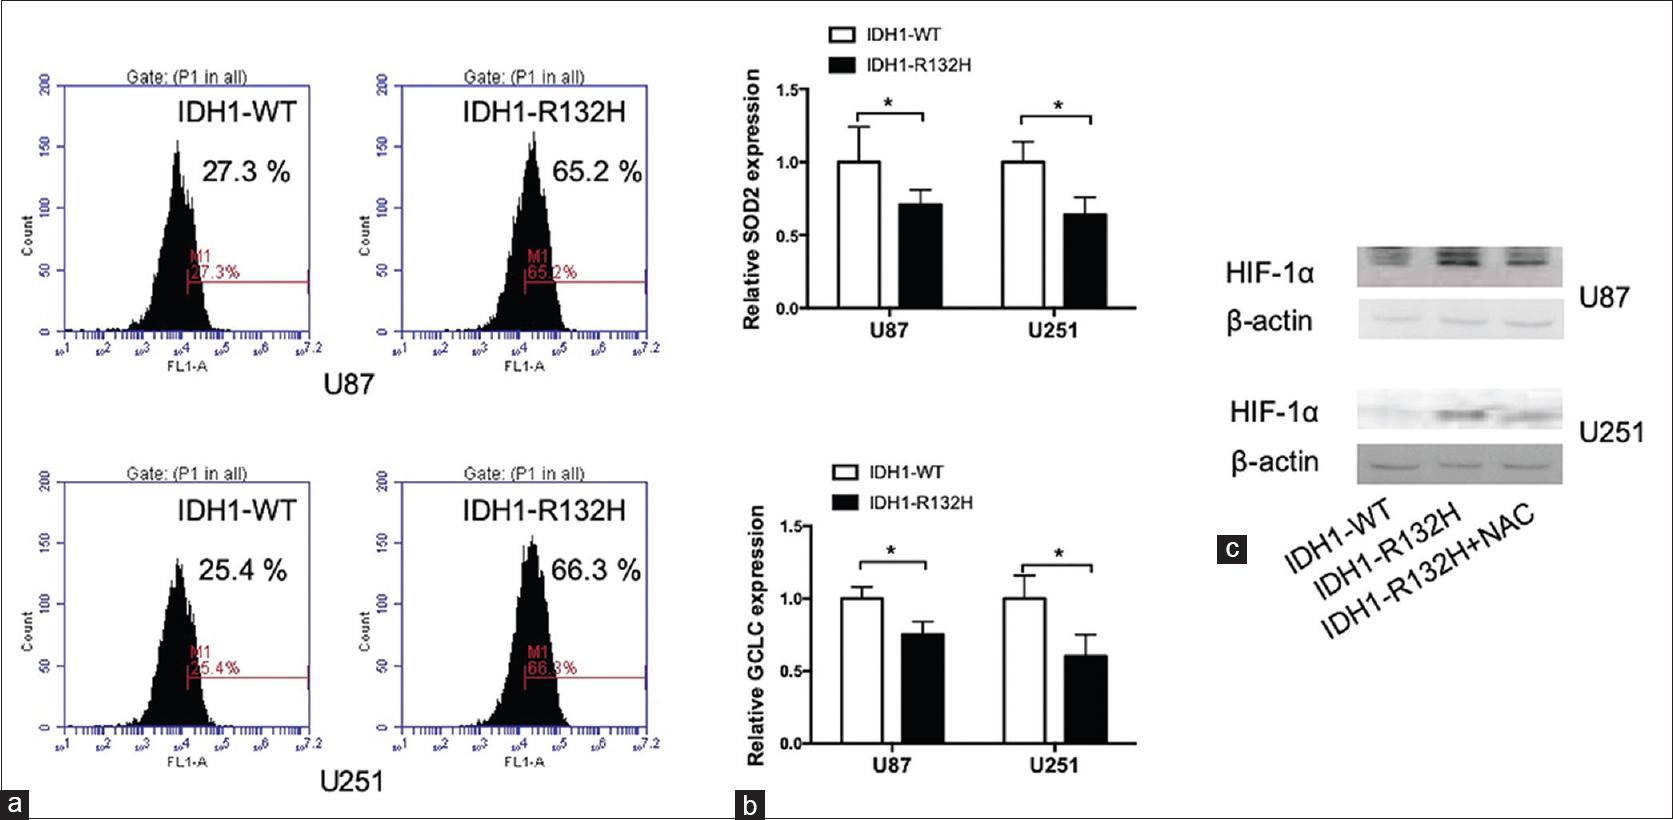 Figure 4: Generation of ROS is involved in IDH1-R132H-induced increase of HIF-1α expression in glioblastoma cells.(a) ROS determination in U87 and U251 cells transfected with IDH1-WT or IDH1-R132H. (b) Relative mRNA expression in U87 and U251 cells transfected with IDH1-WT or IDH1-R132H. (c) Protein expression of HIF-1α in U87 and U251 cells transfected with IDH1-WT or IDH1-R132H and treated with NAC. * <i>P</i> < 0.05